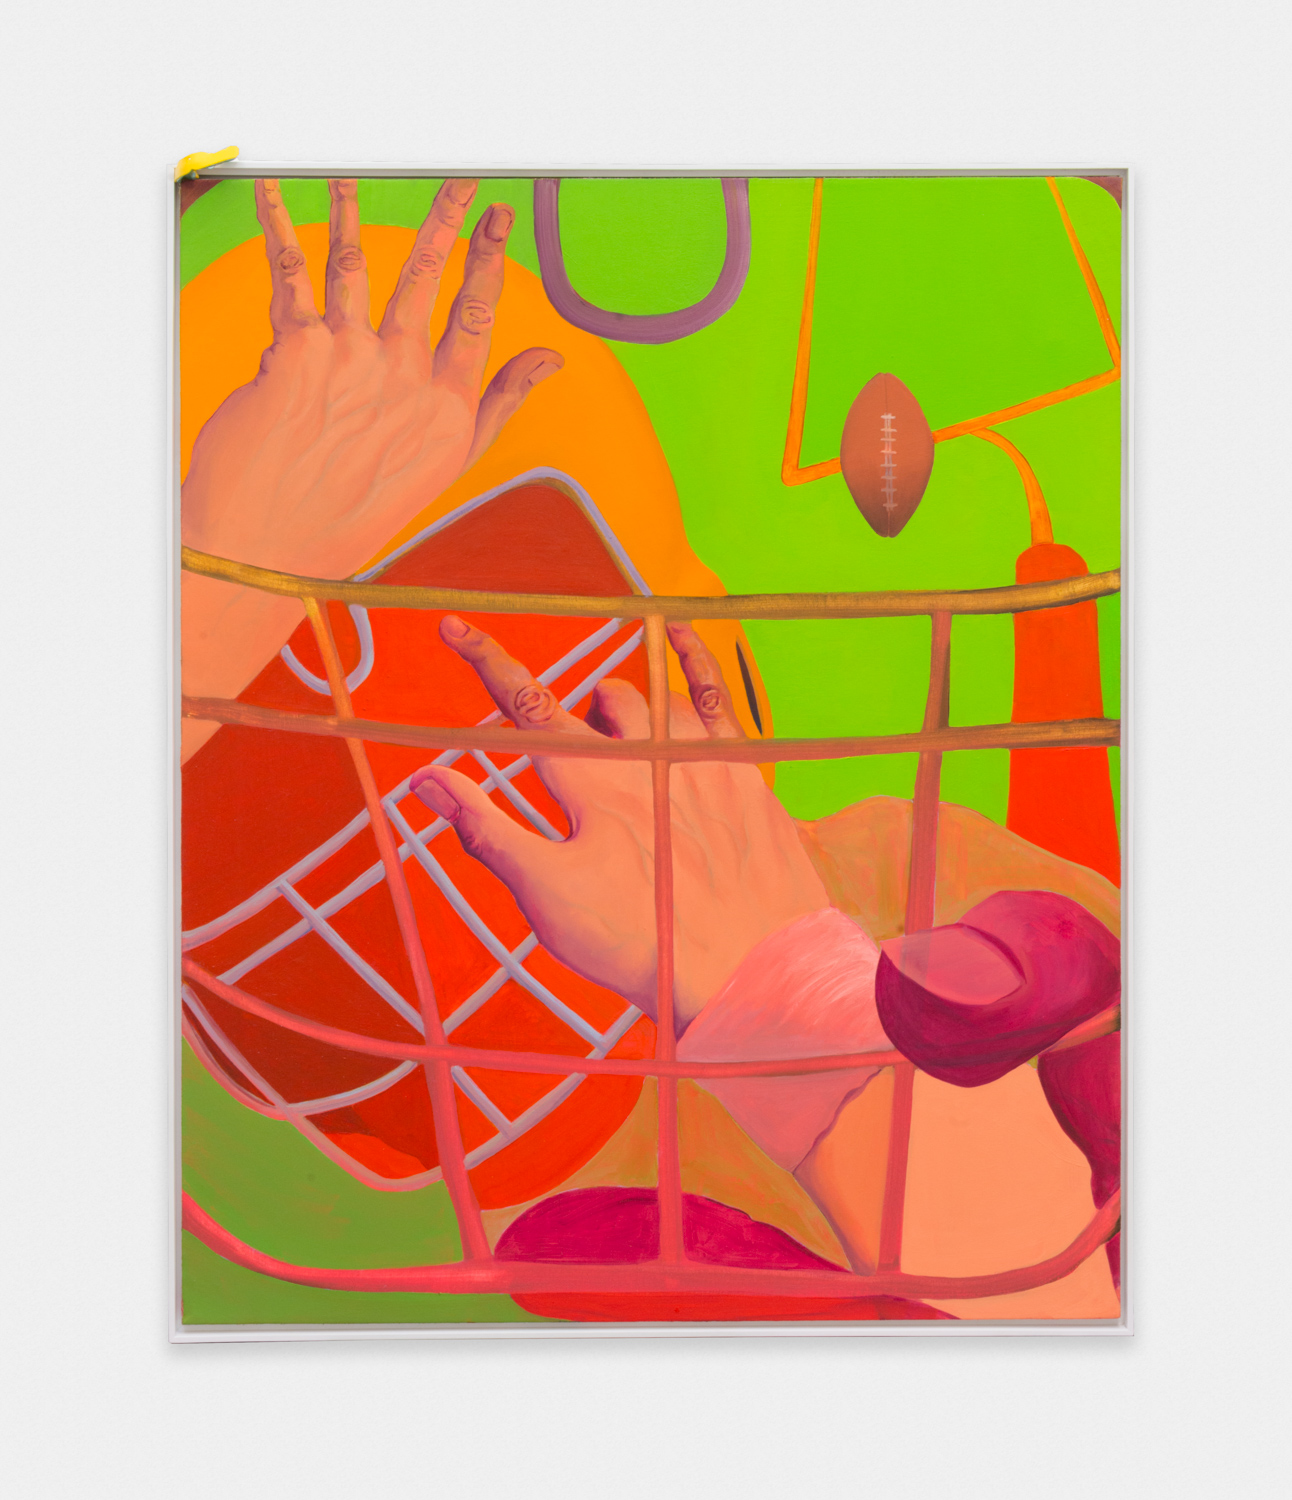 Ethan Gill  Composition with red, green and pink sweatband  2016 Oil on canvas 45h x 37w in EGill001